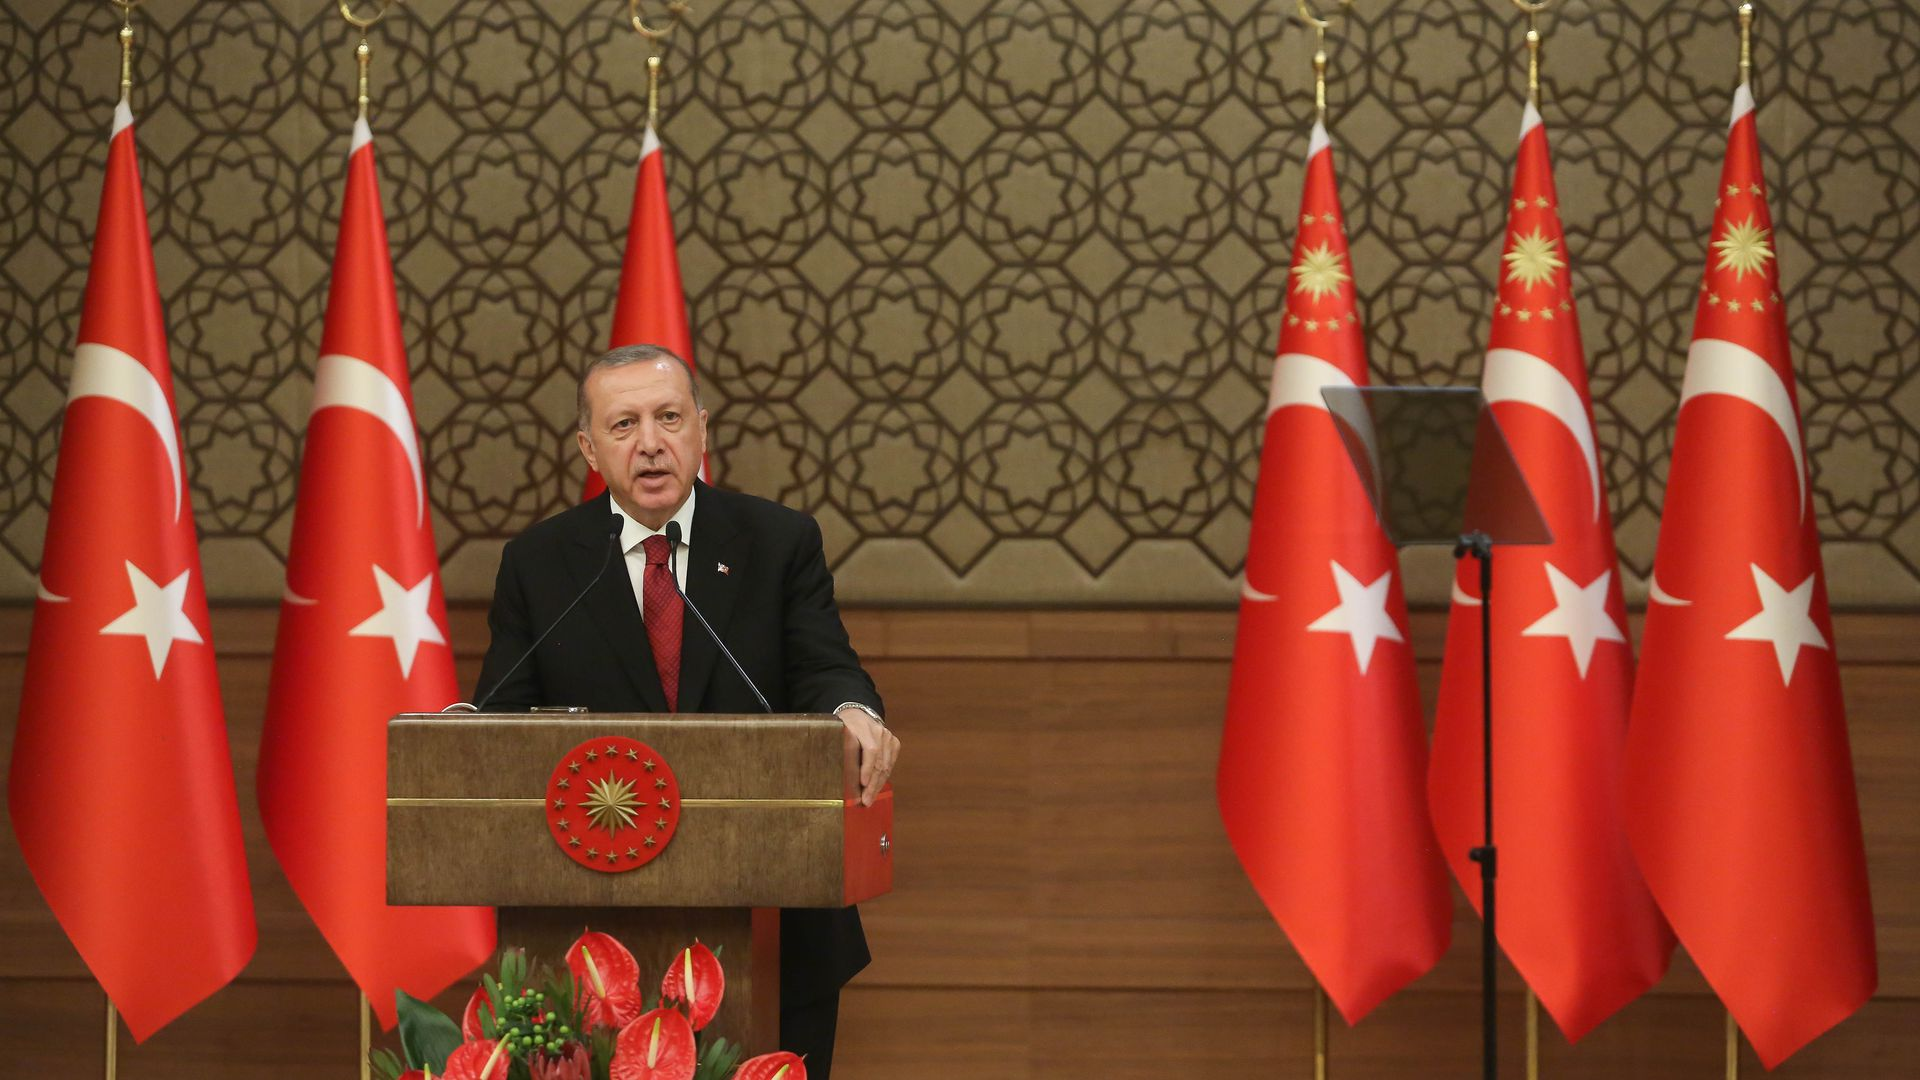 Turkey's President Erdogan giving a speech in front of Turkish flags.